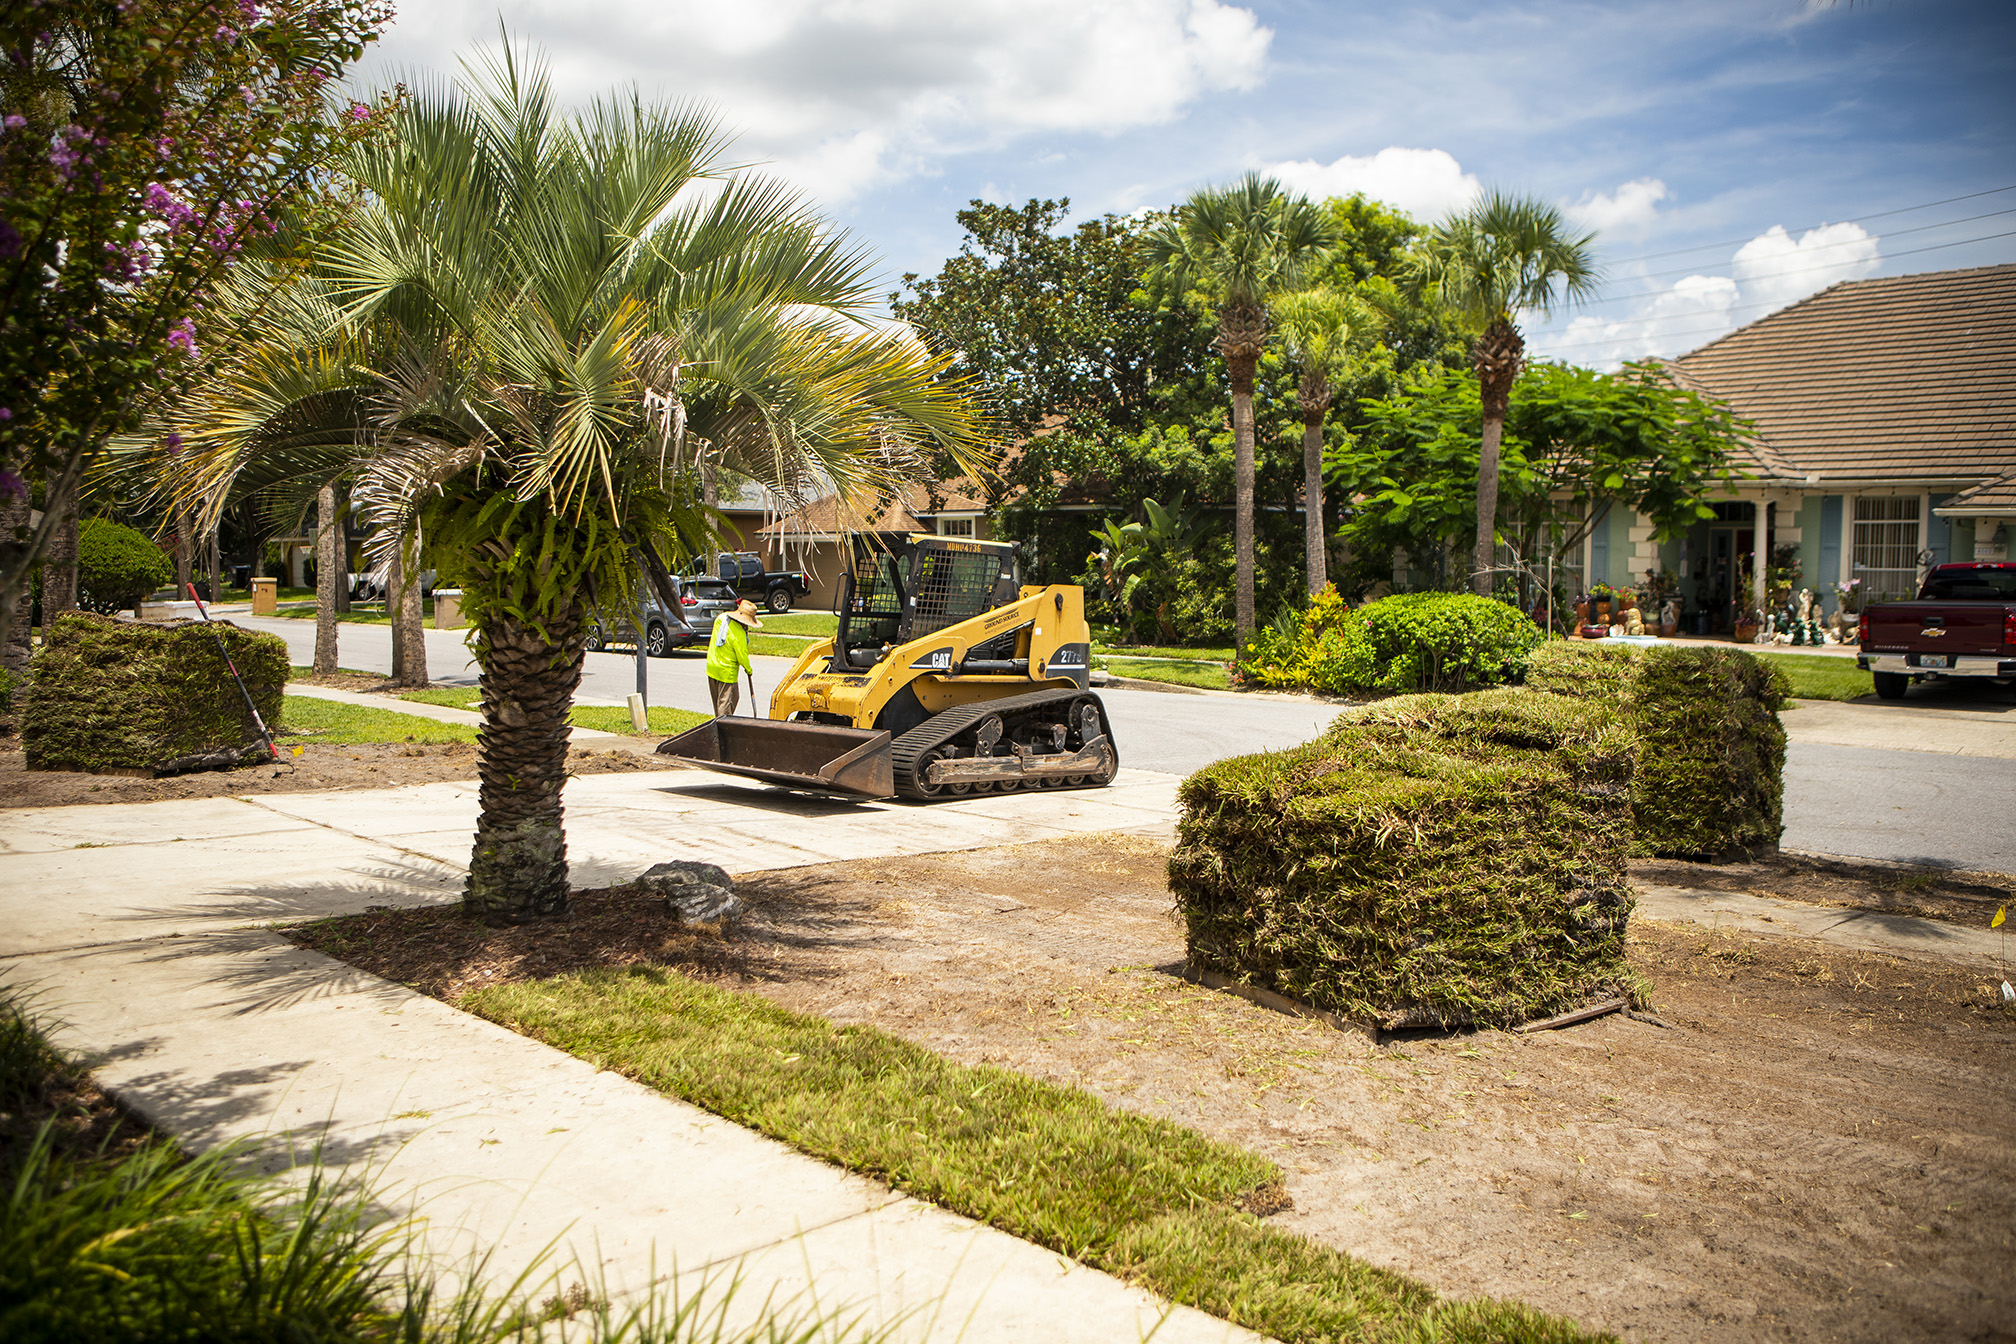 Sod being installed in central Florida lawn